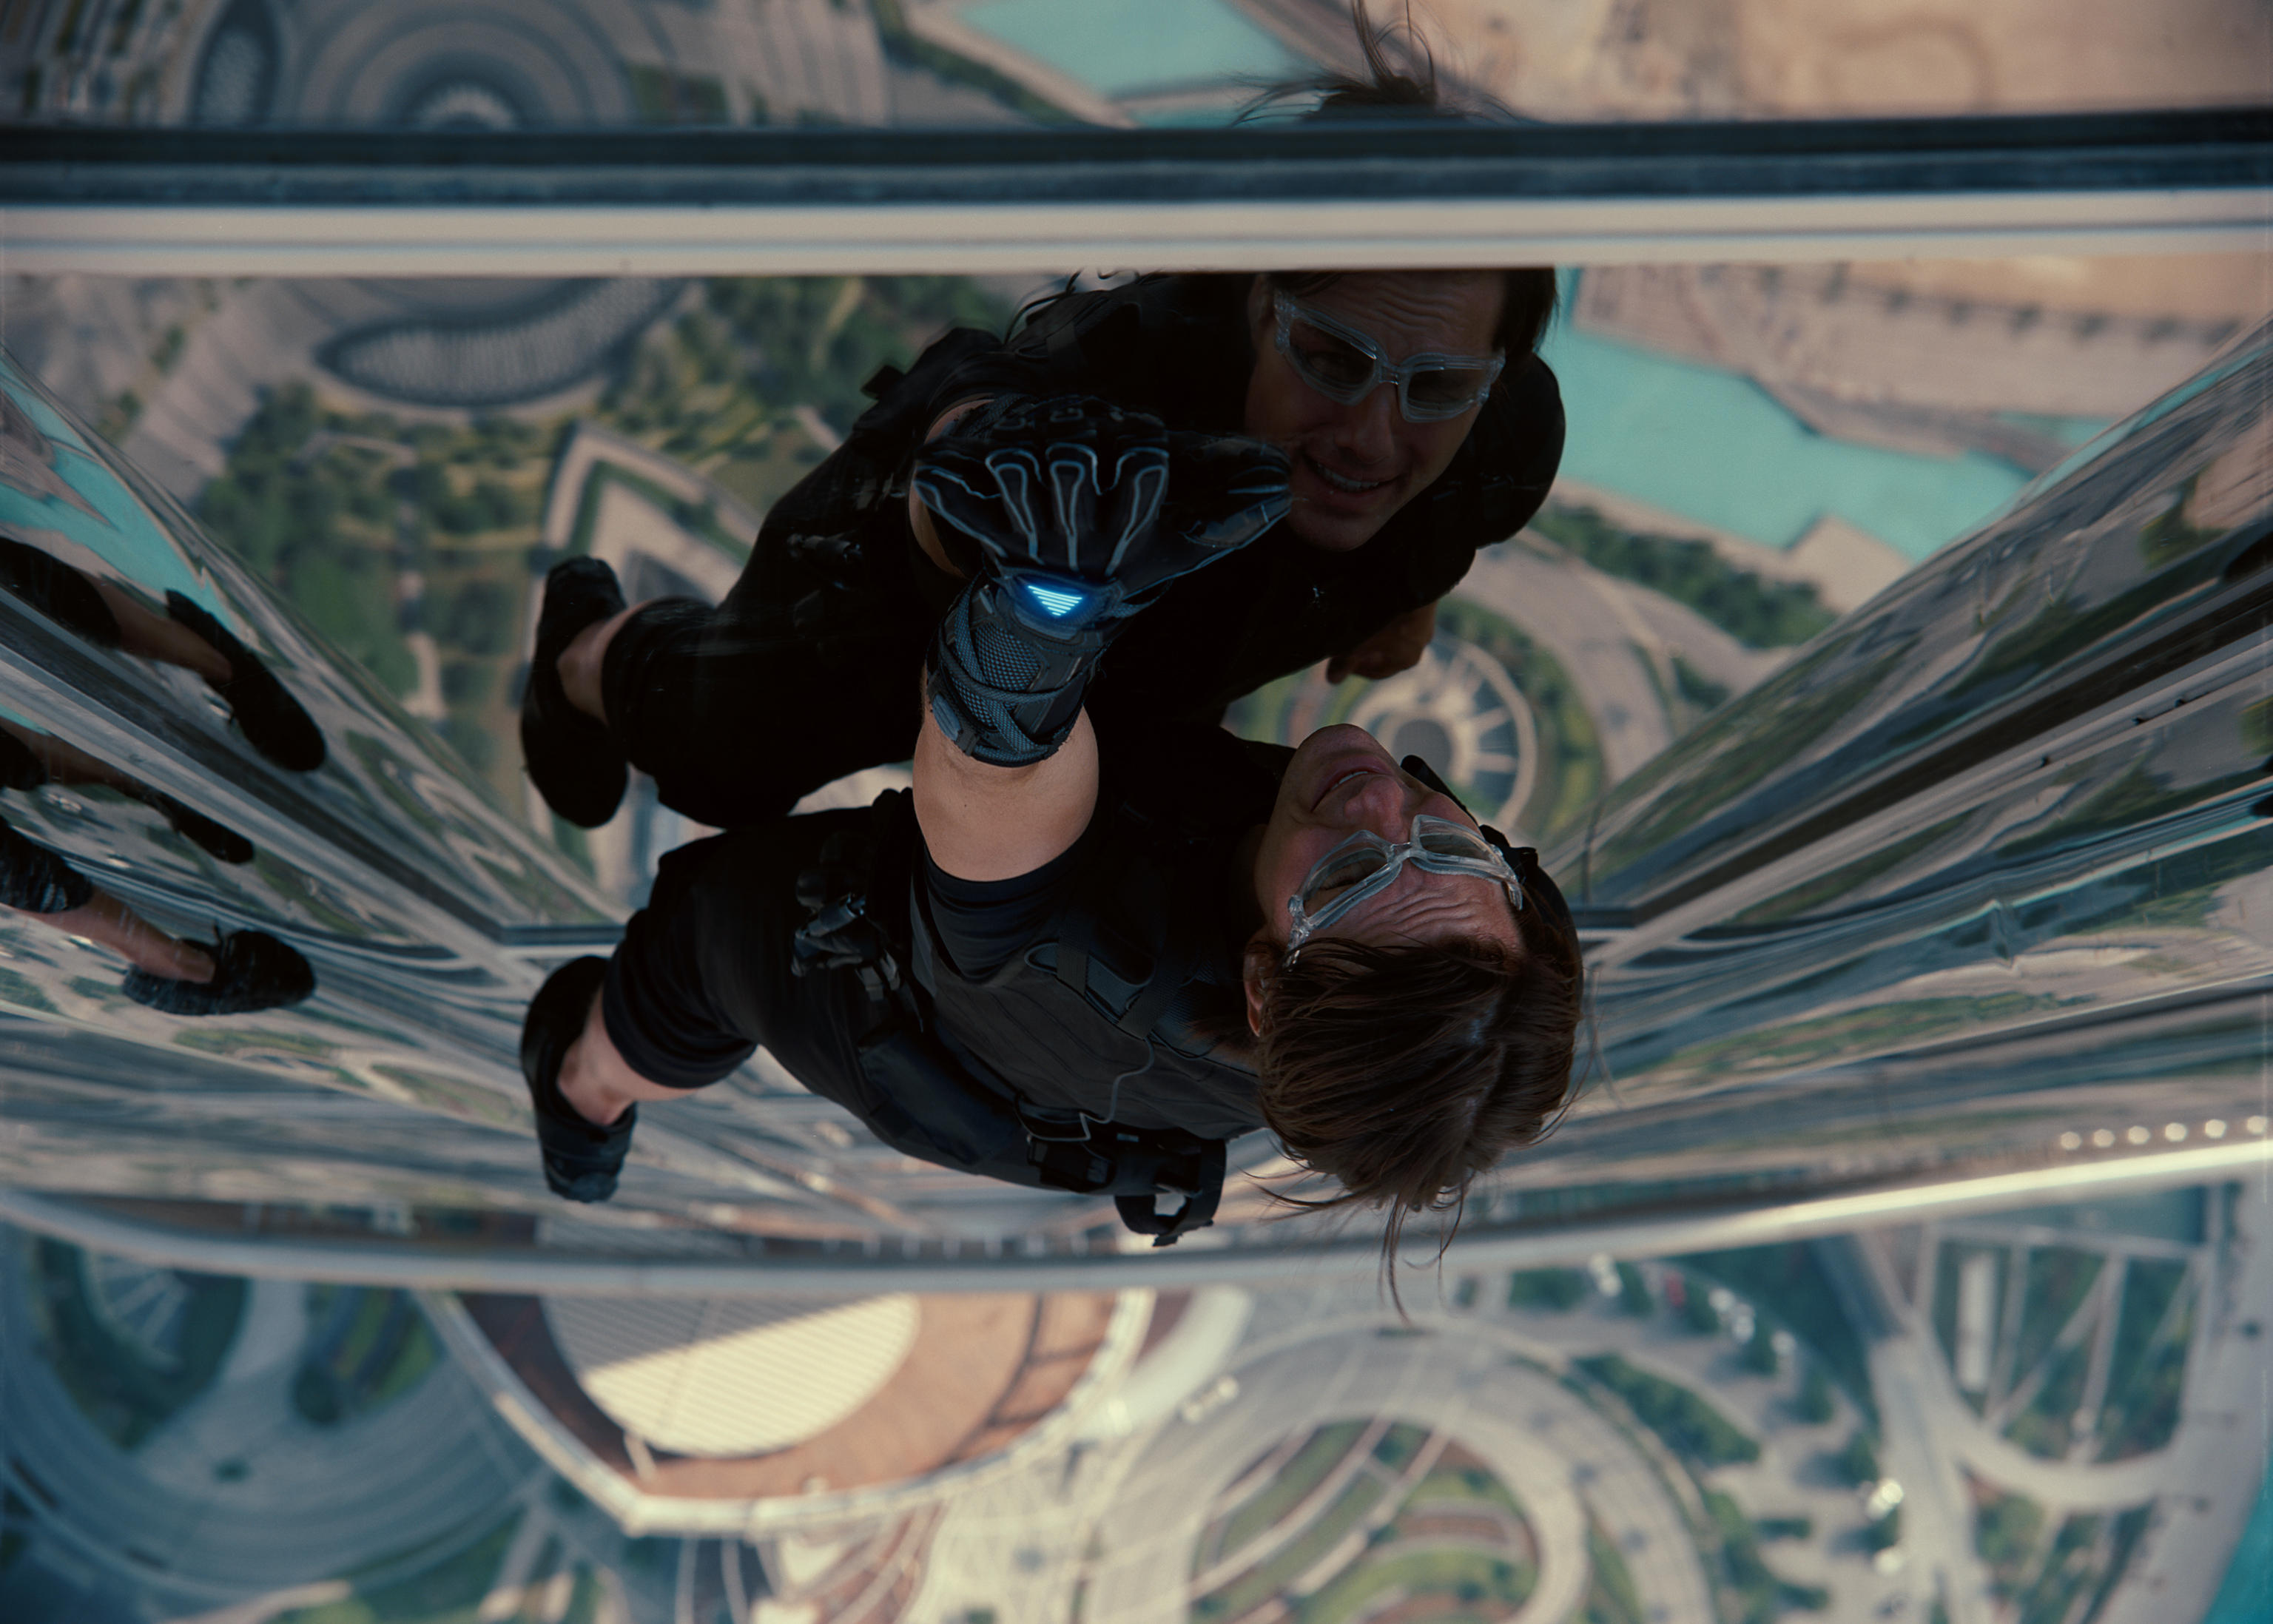 <p>Ethan Hunt climbs the Burj Khalifa in Mission: Impossible - Ghost Protocol, one of the series' wild stunts that showcases a cool gadget.</p>